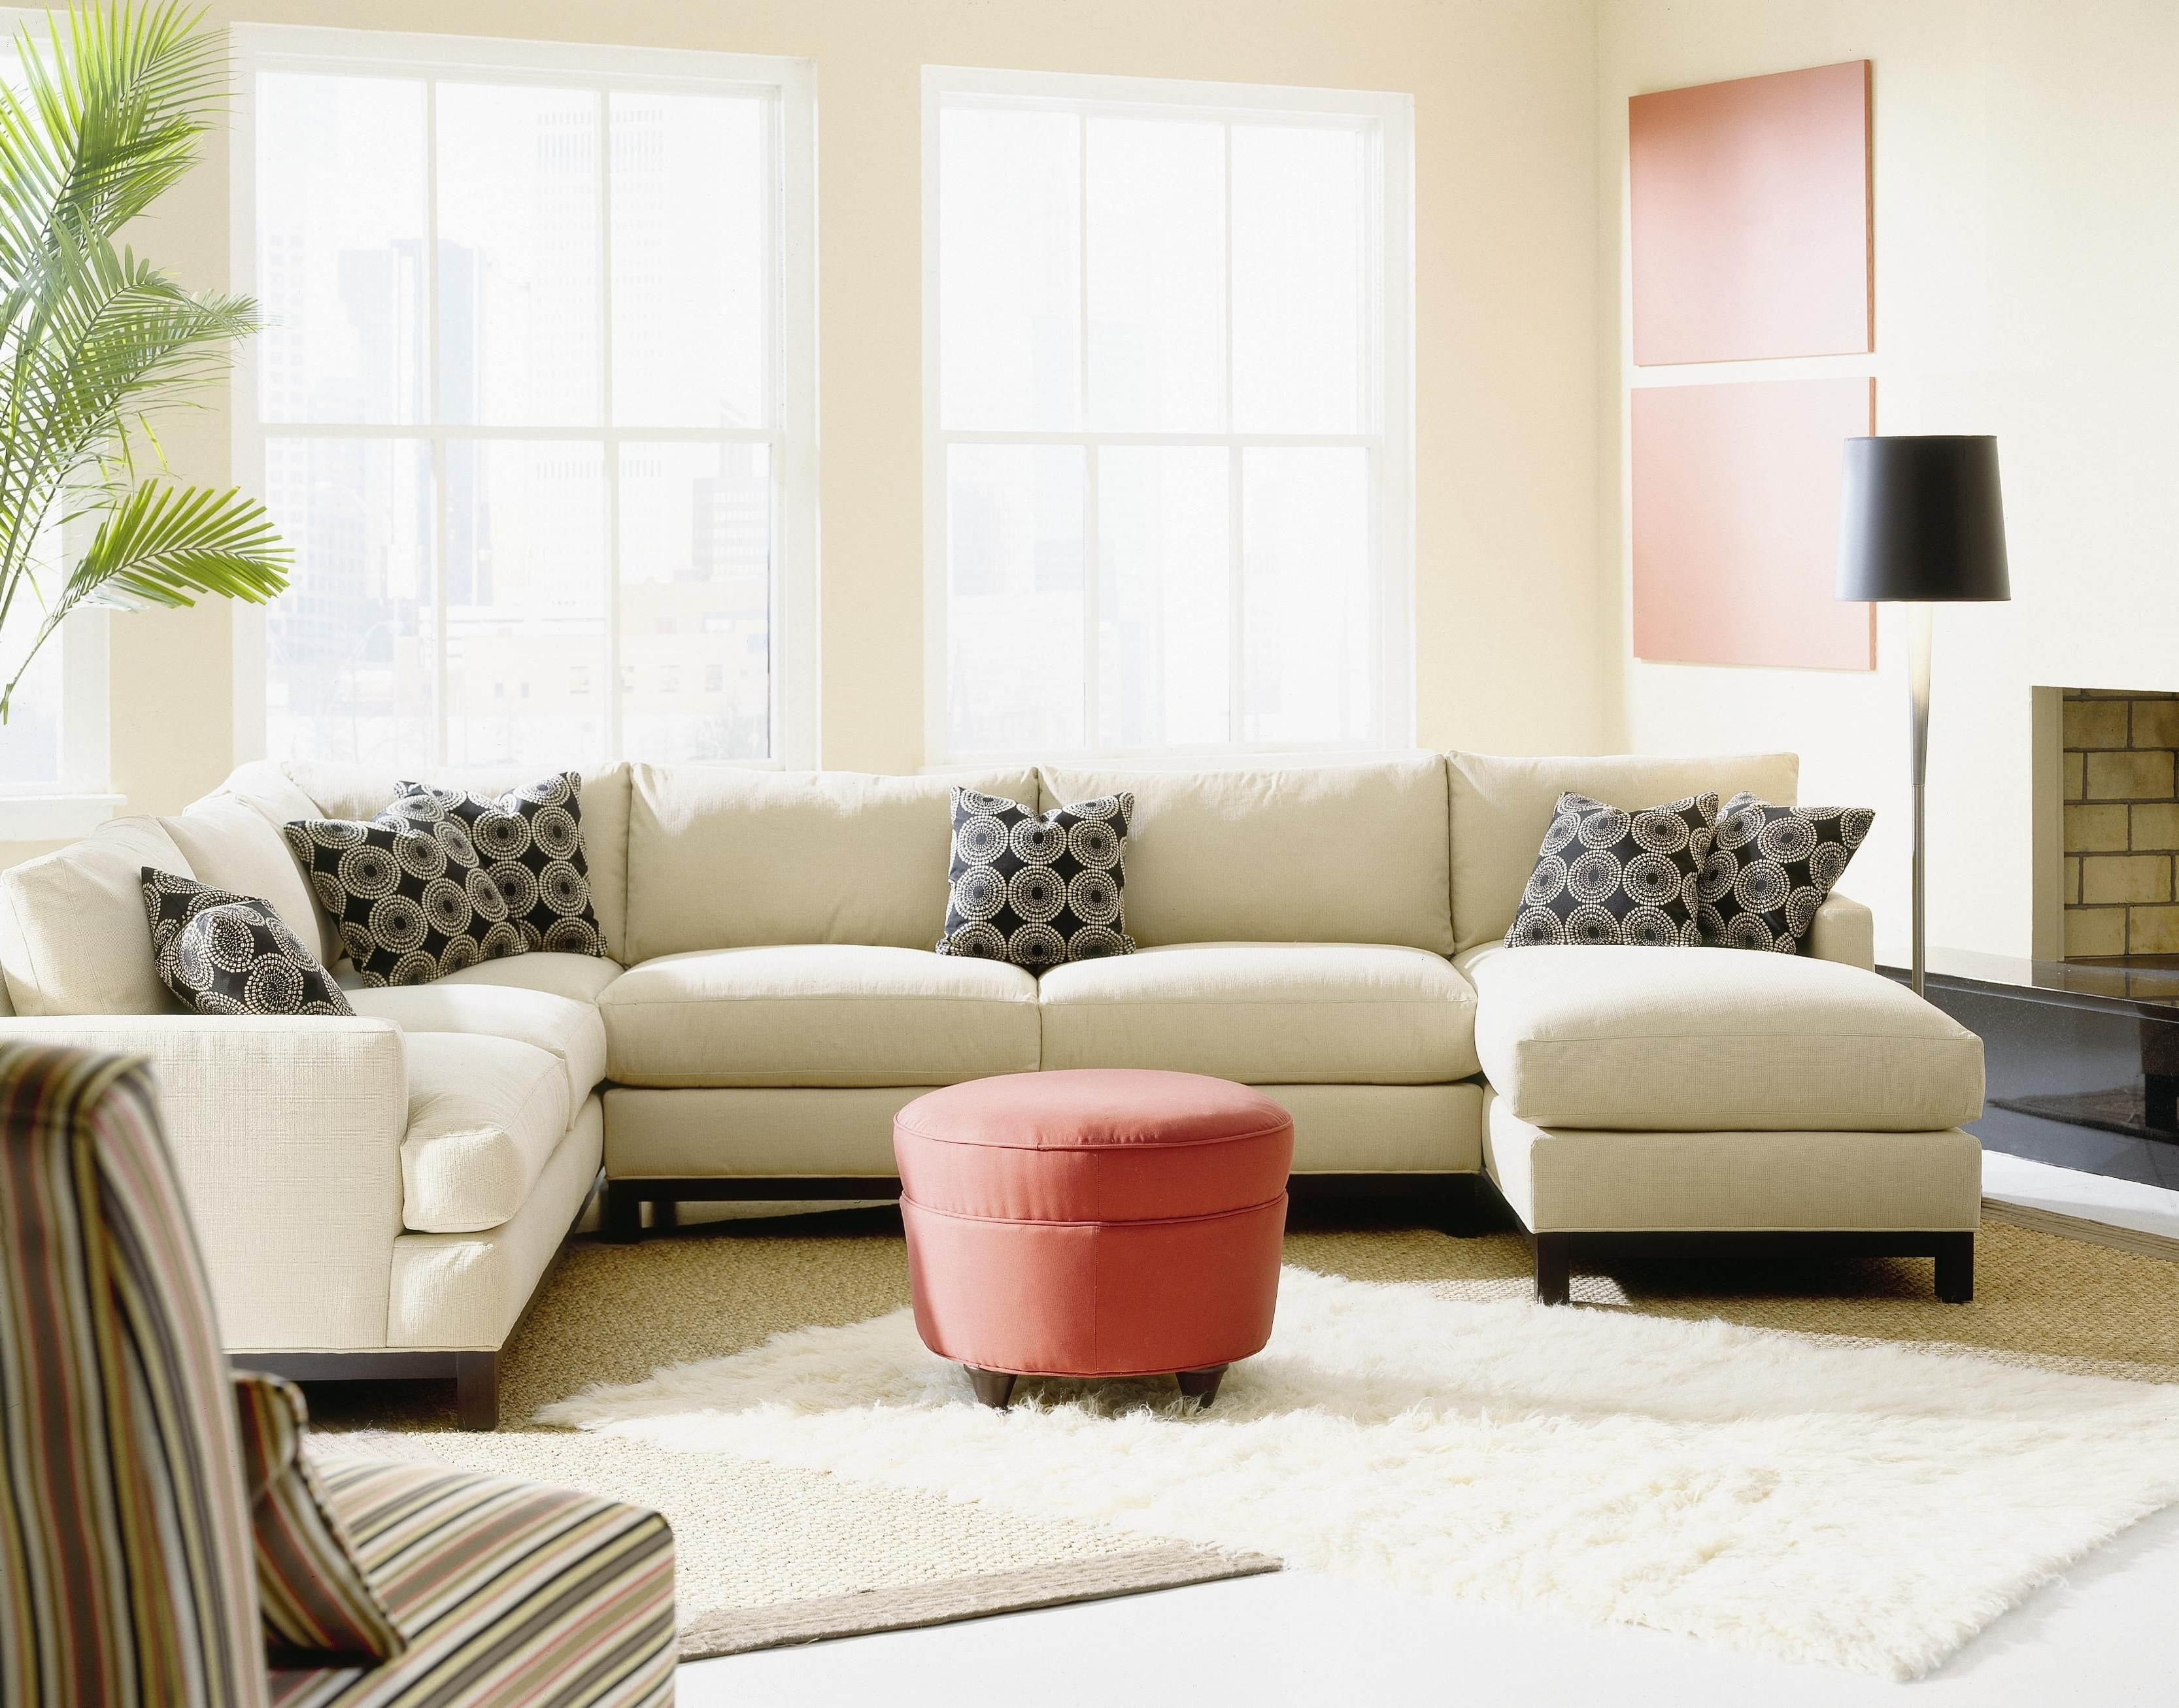 2019 Crisp Contemporary Modular Sectional Sofa Can Be Rearranged To Fit Pertaining To Sectional Sofas That Can Be Rearranged (View 2 of 20)